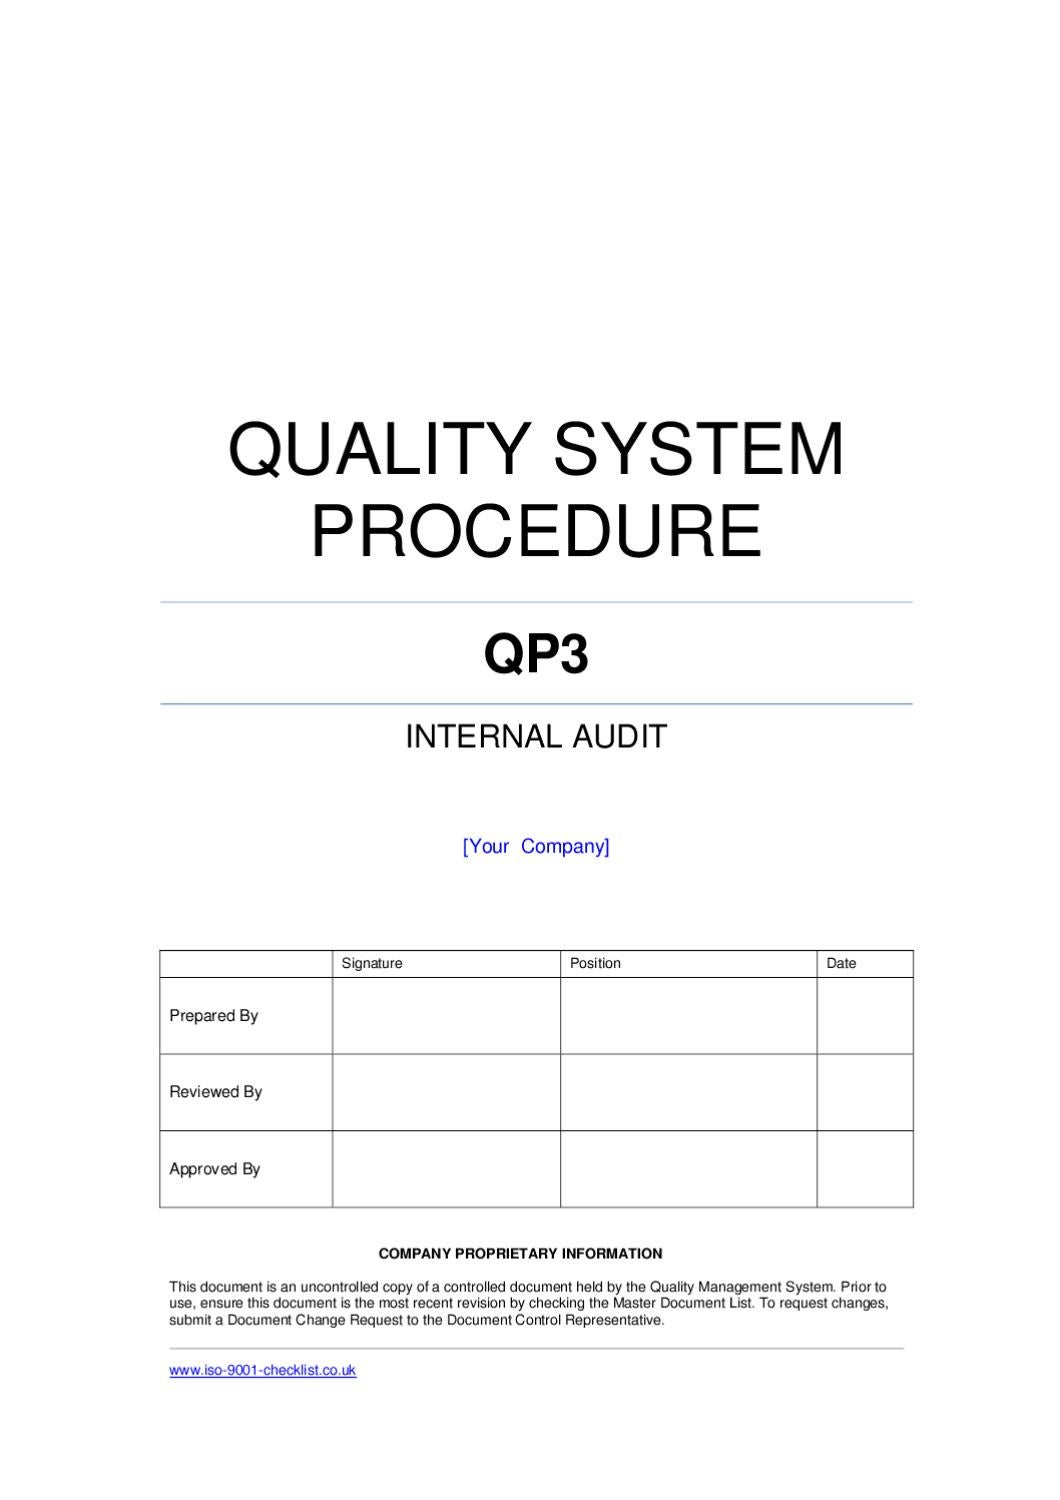 document management system iso 9001